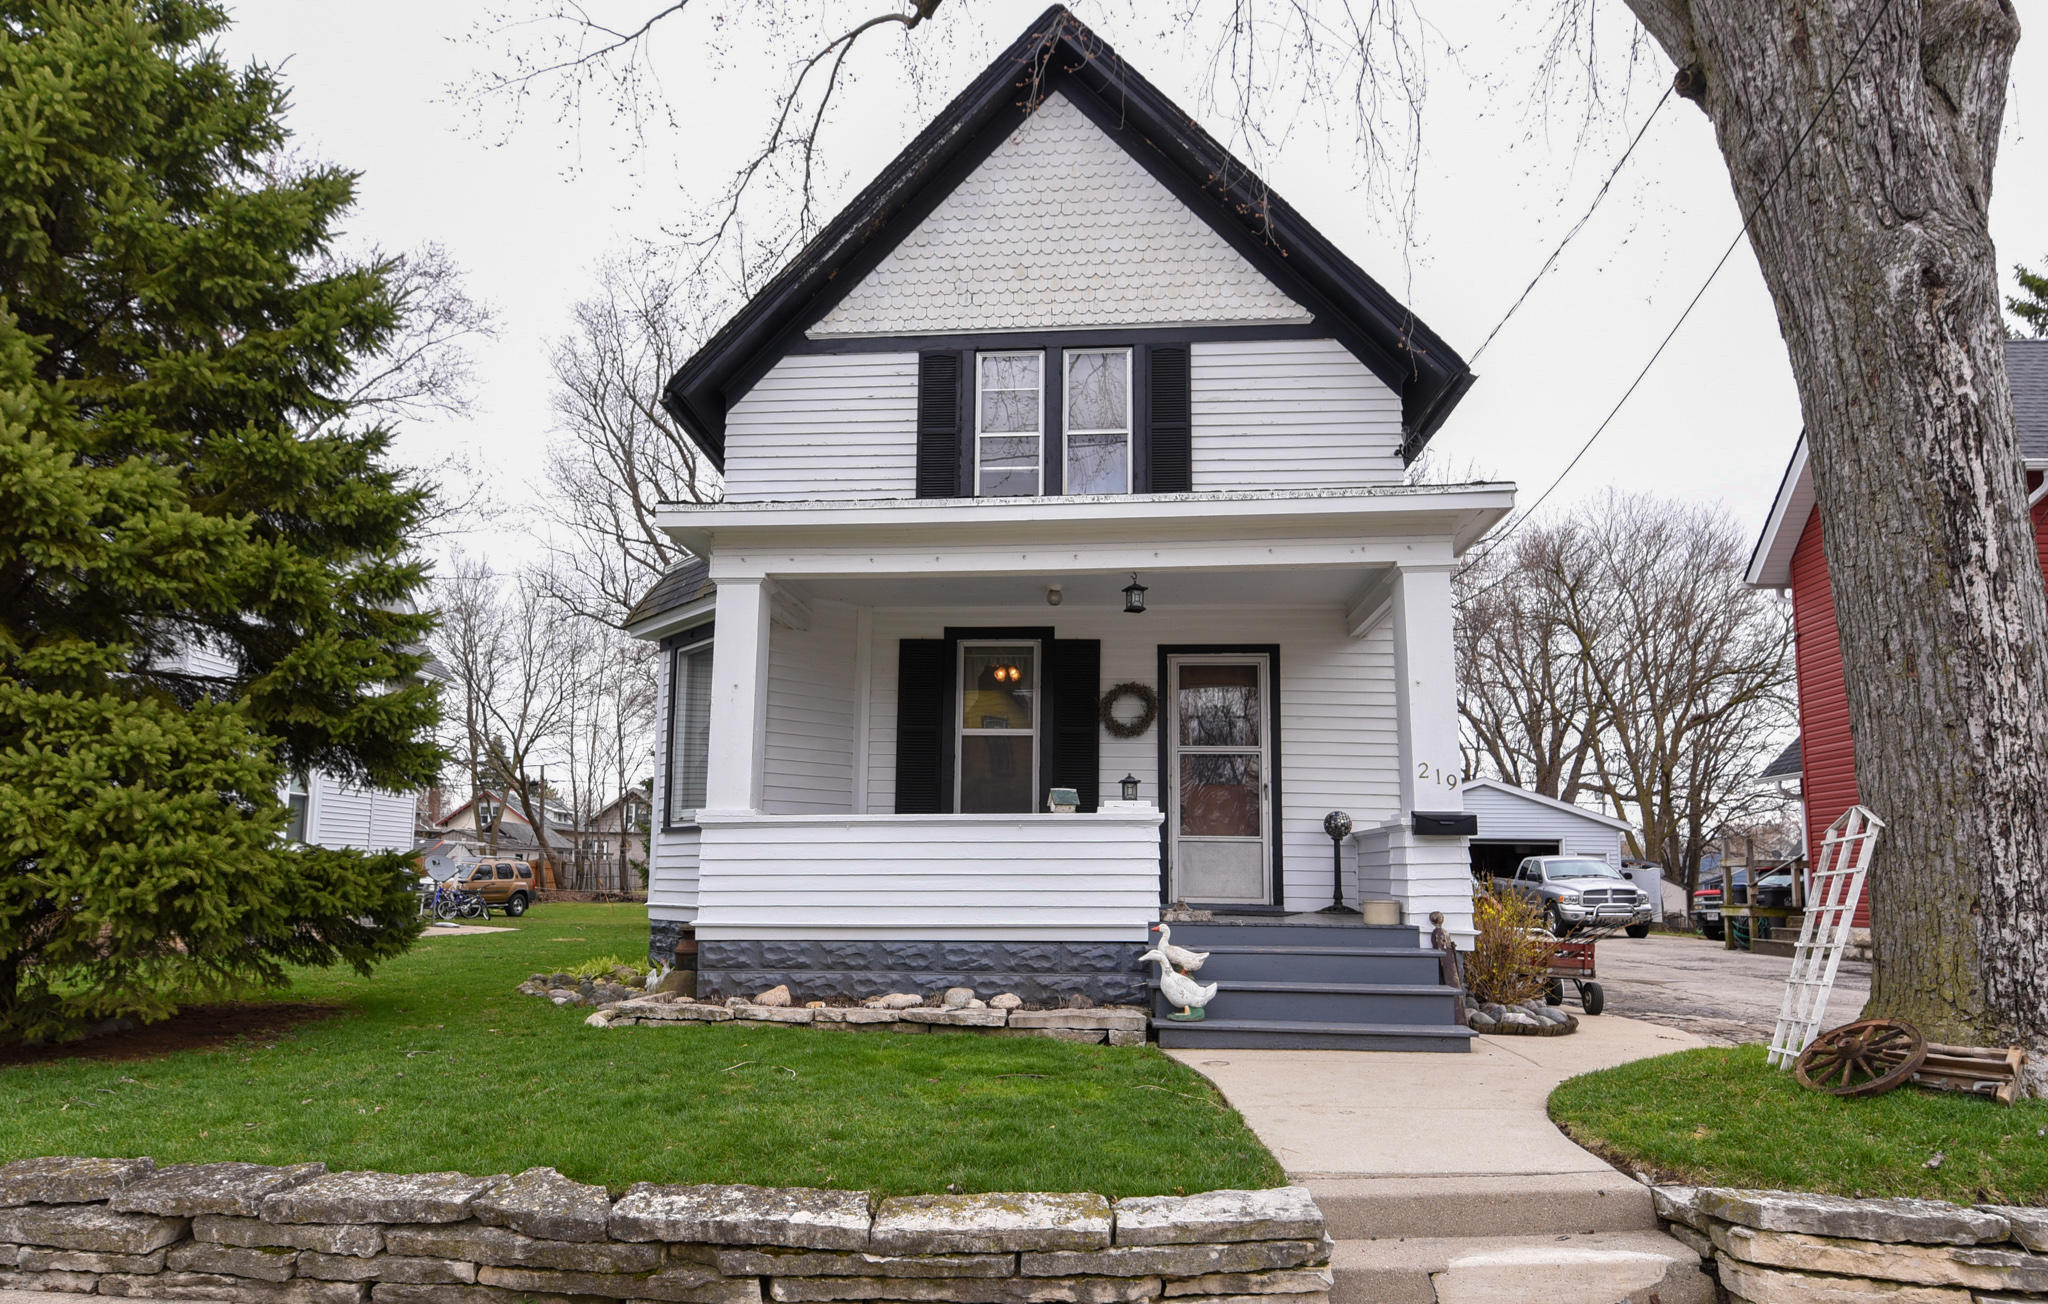 219 Waverly Pl, Waukesha, Wisconsin 53186, 2 Bedrooms Bedrooms, 6 Rooms Rooms,1 BathroomBathrooms,Single-Family,For Sale,Waverly Pl,1685251